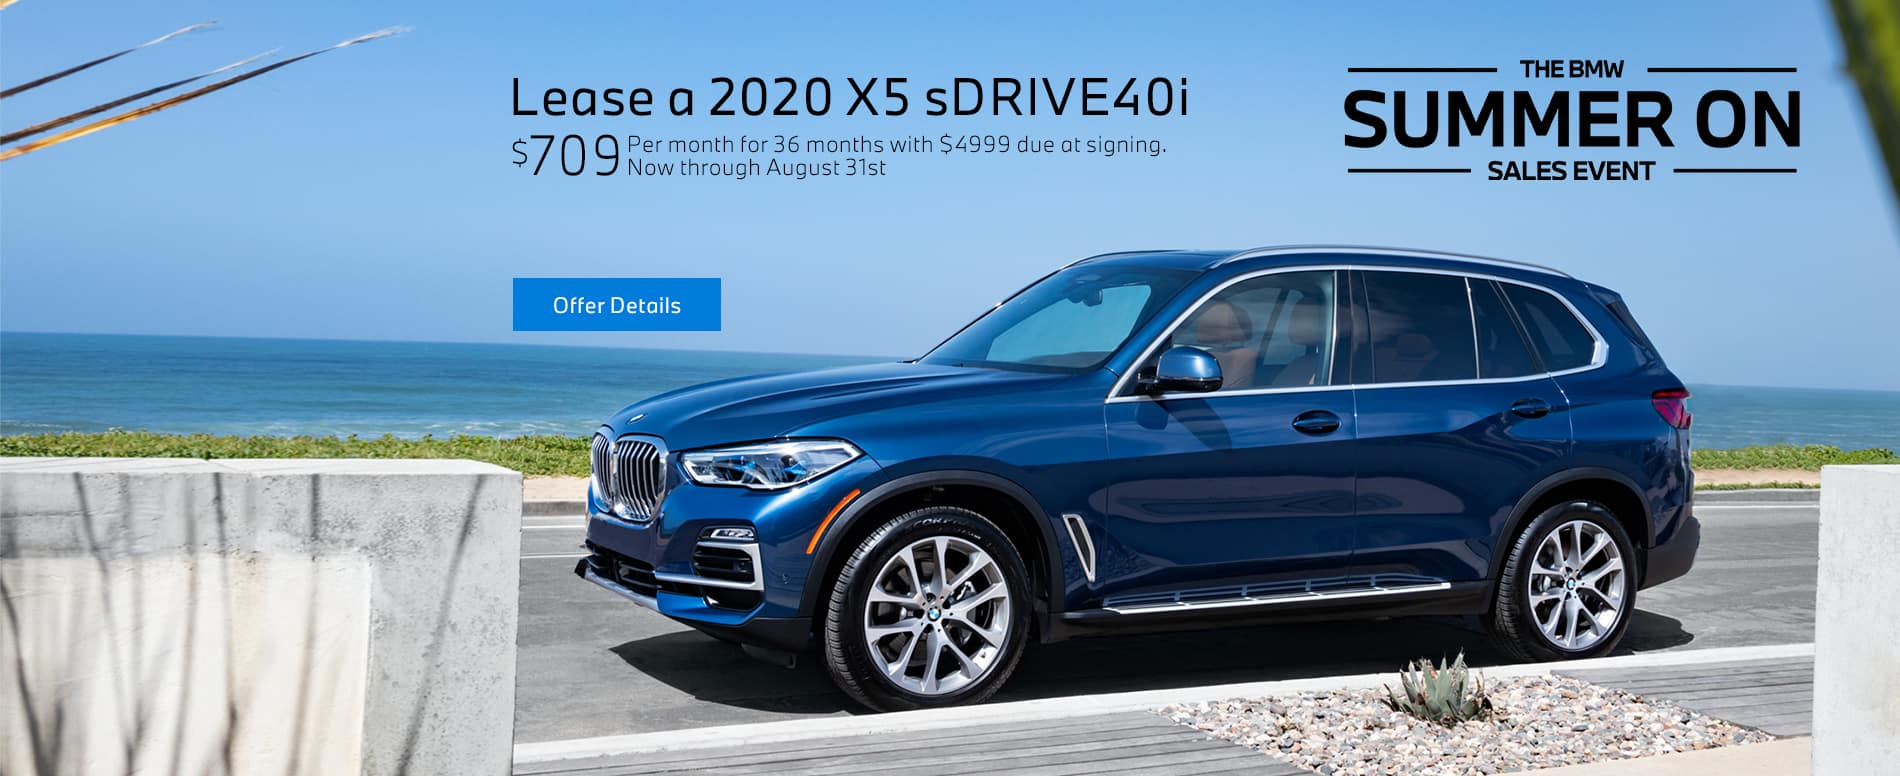 Lease a 2020 BMW X5 sDrive40i at BMW of Fort Walton Beach